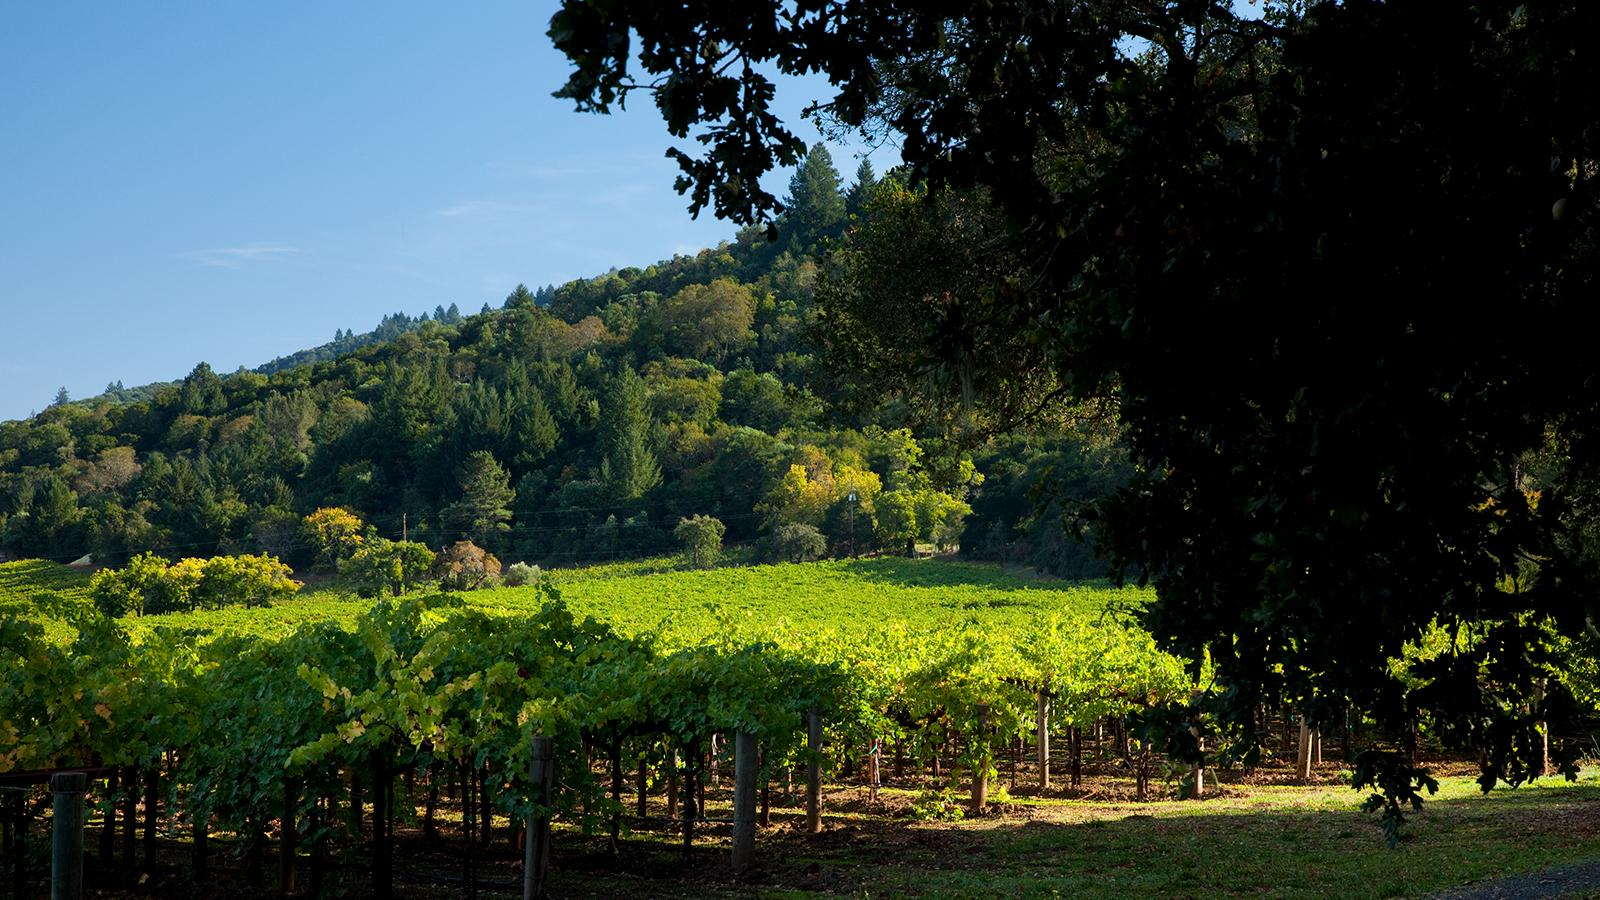 Martha's Vineyard has been the source of some of Napa's most distinct Cabernets for more than 40 years.